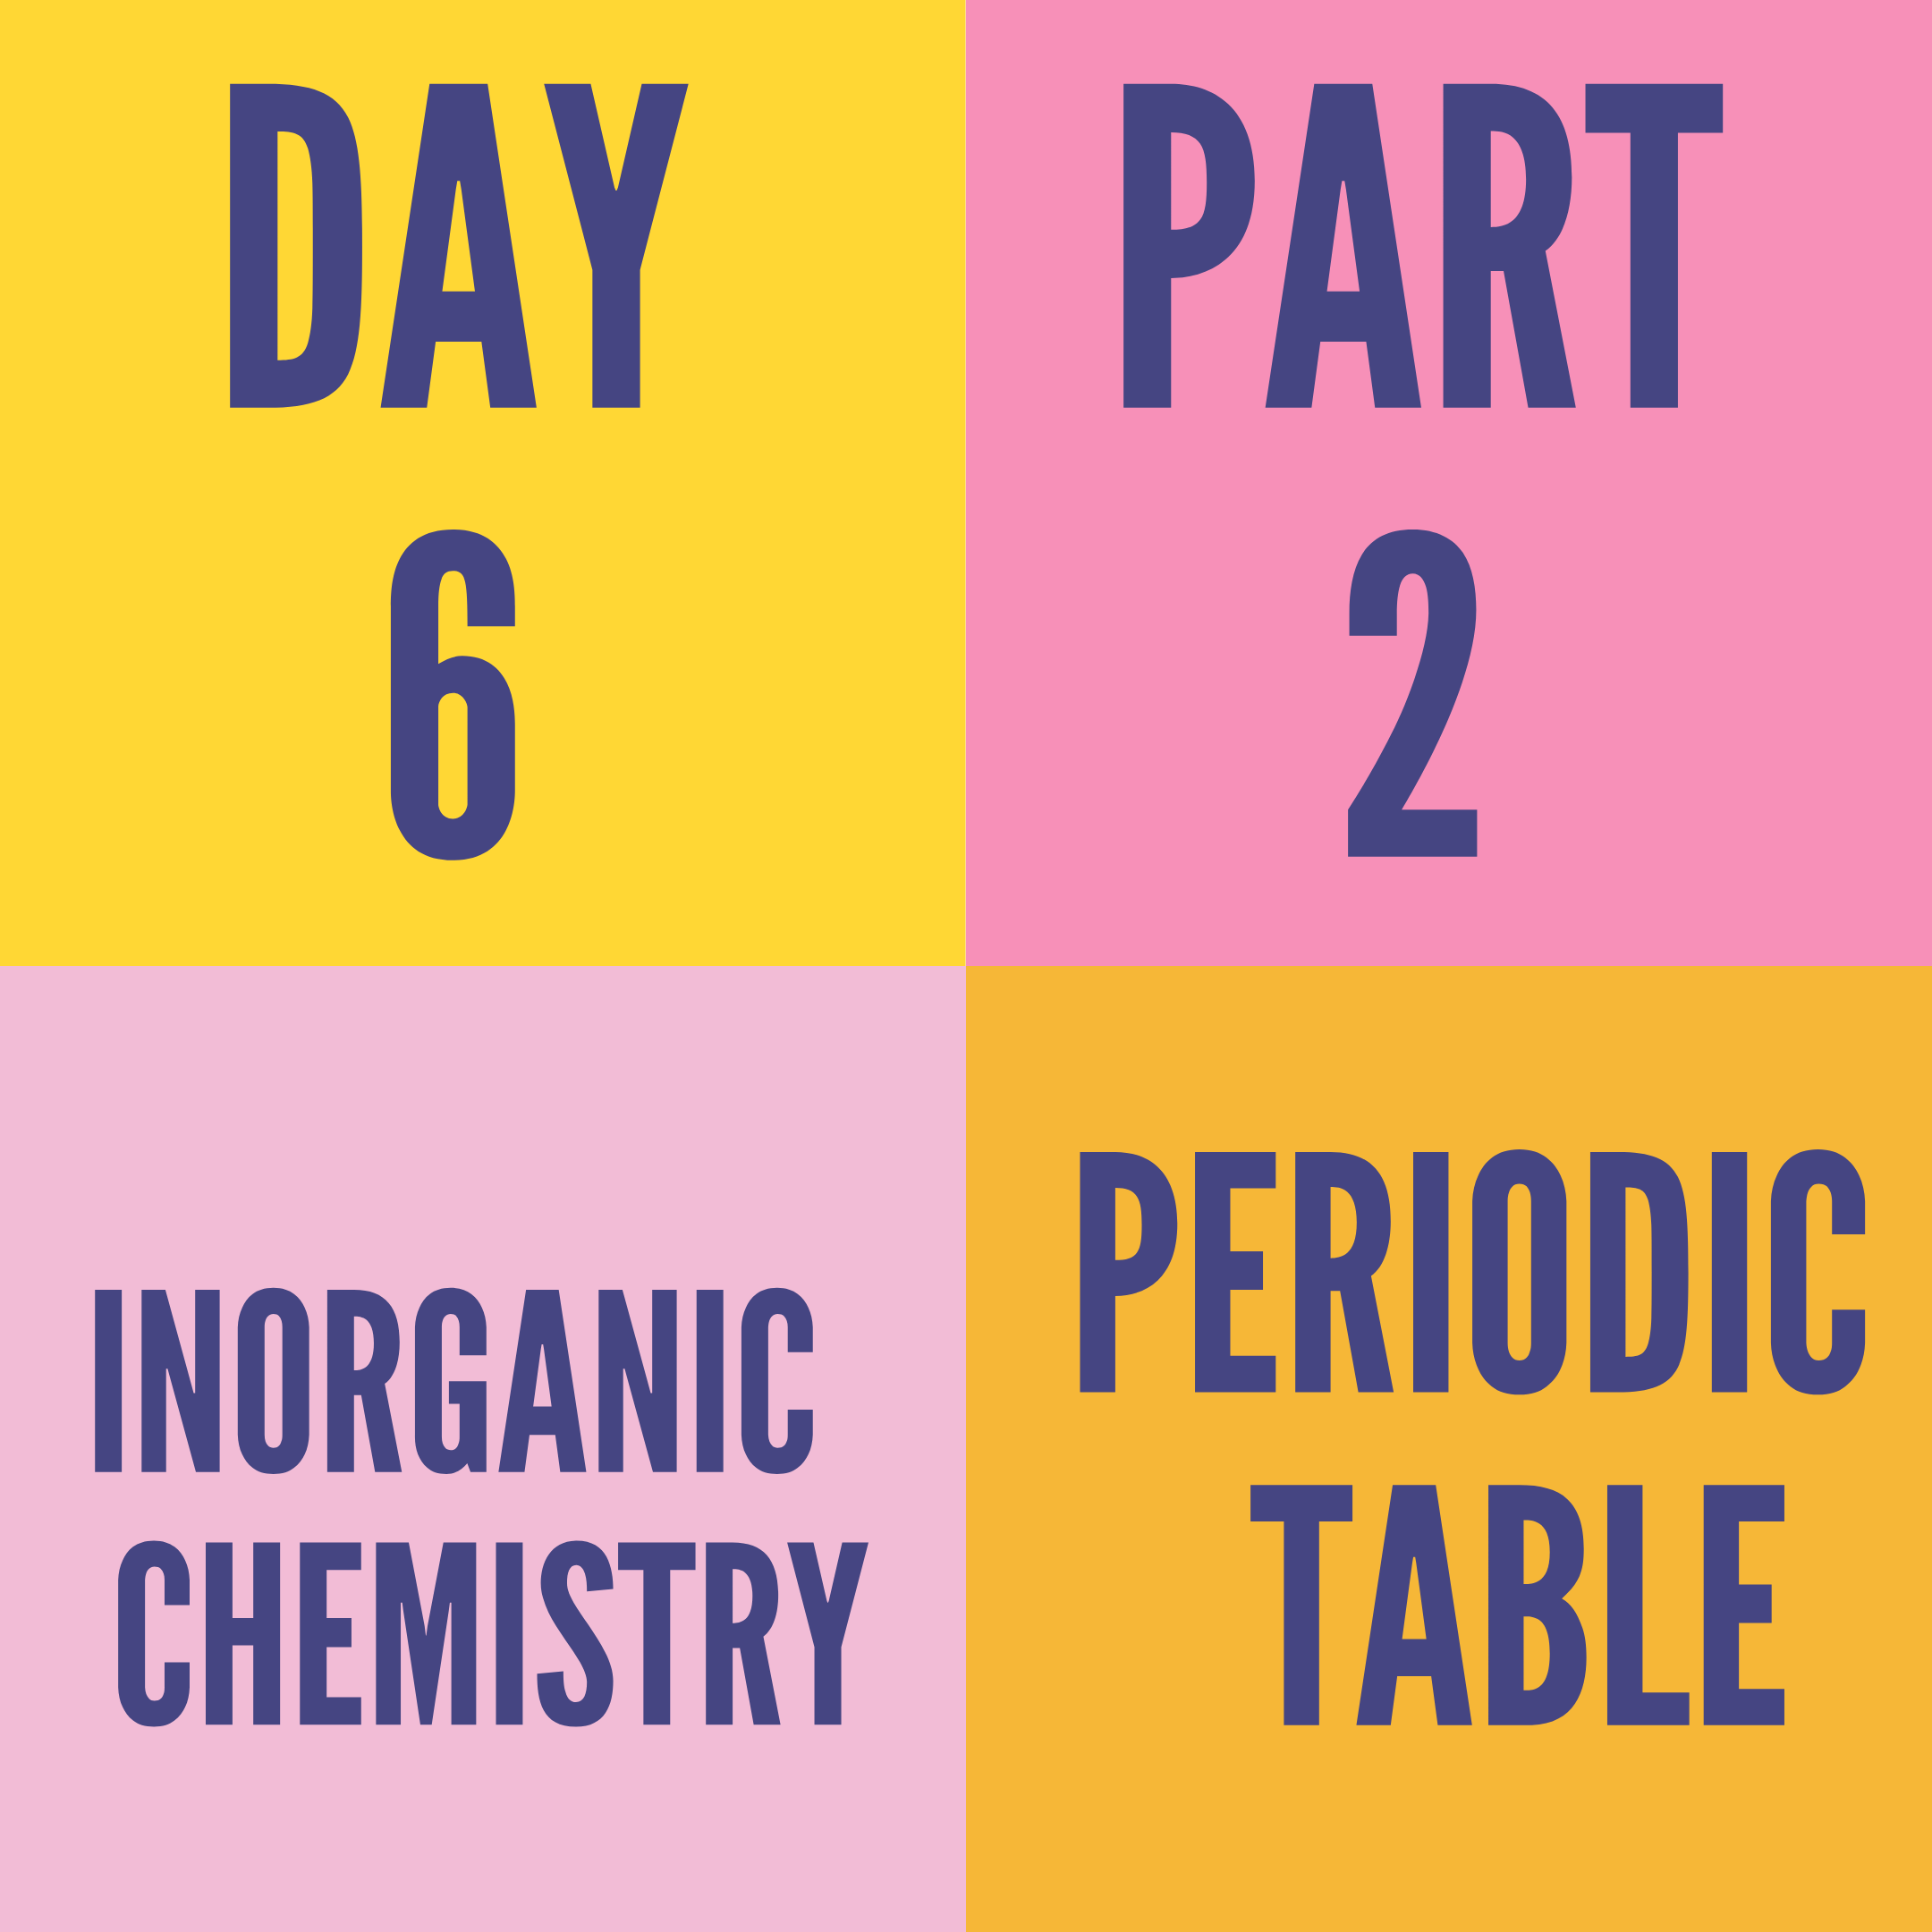 DAY-6 PART-2 PERIODIC TABLE